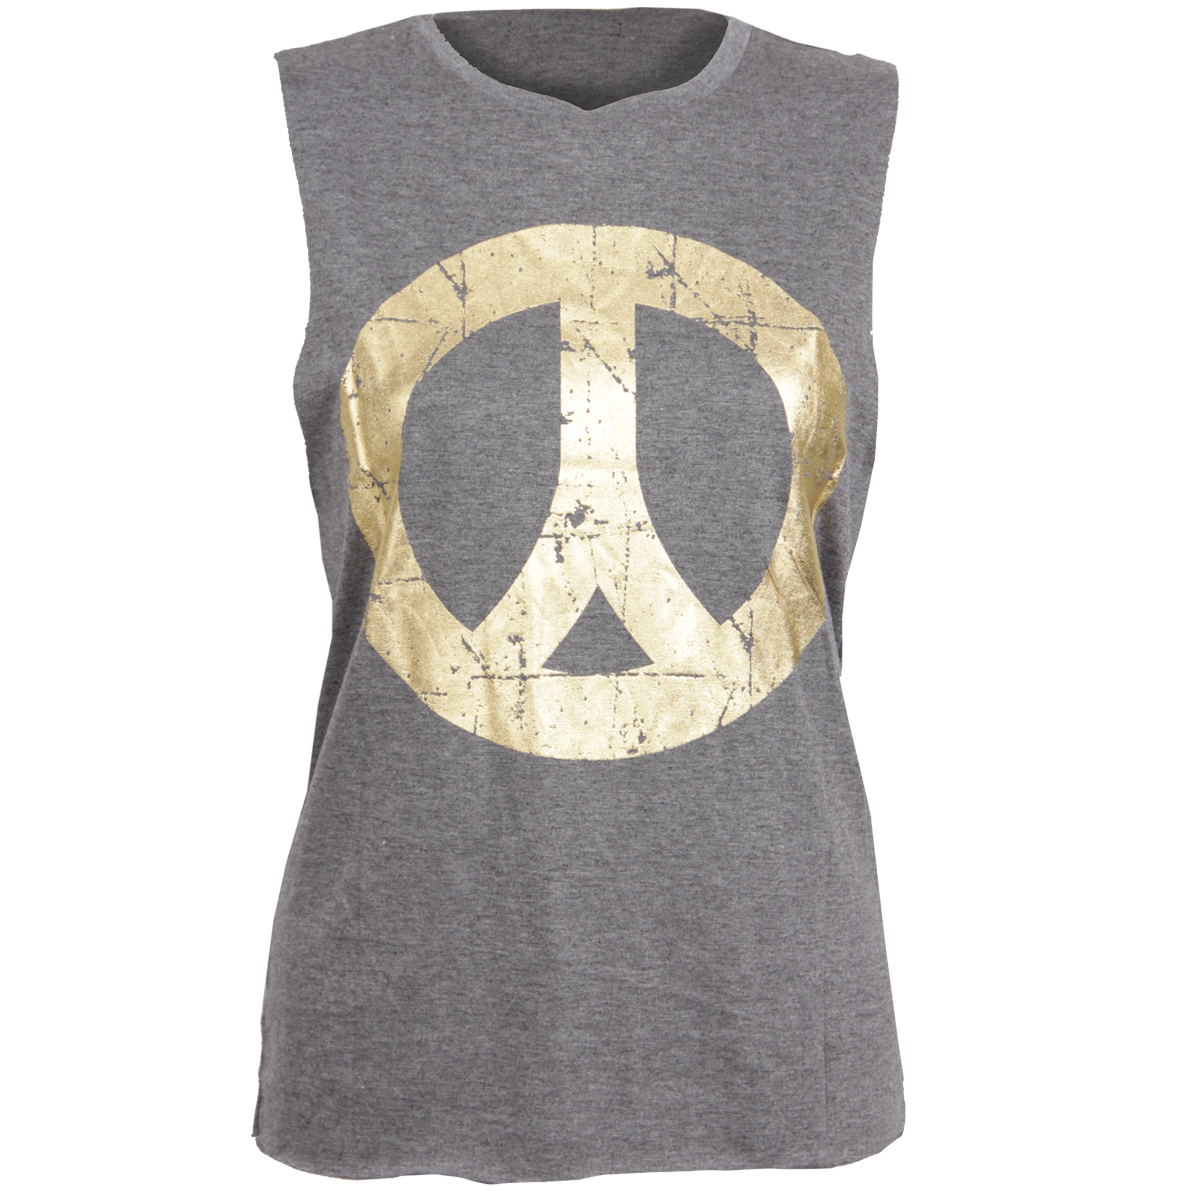 Grey Vest Top with Gold Peace Sign Preview